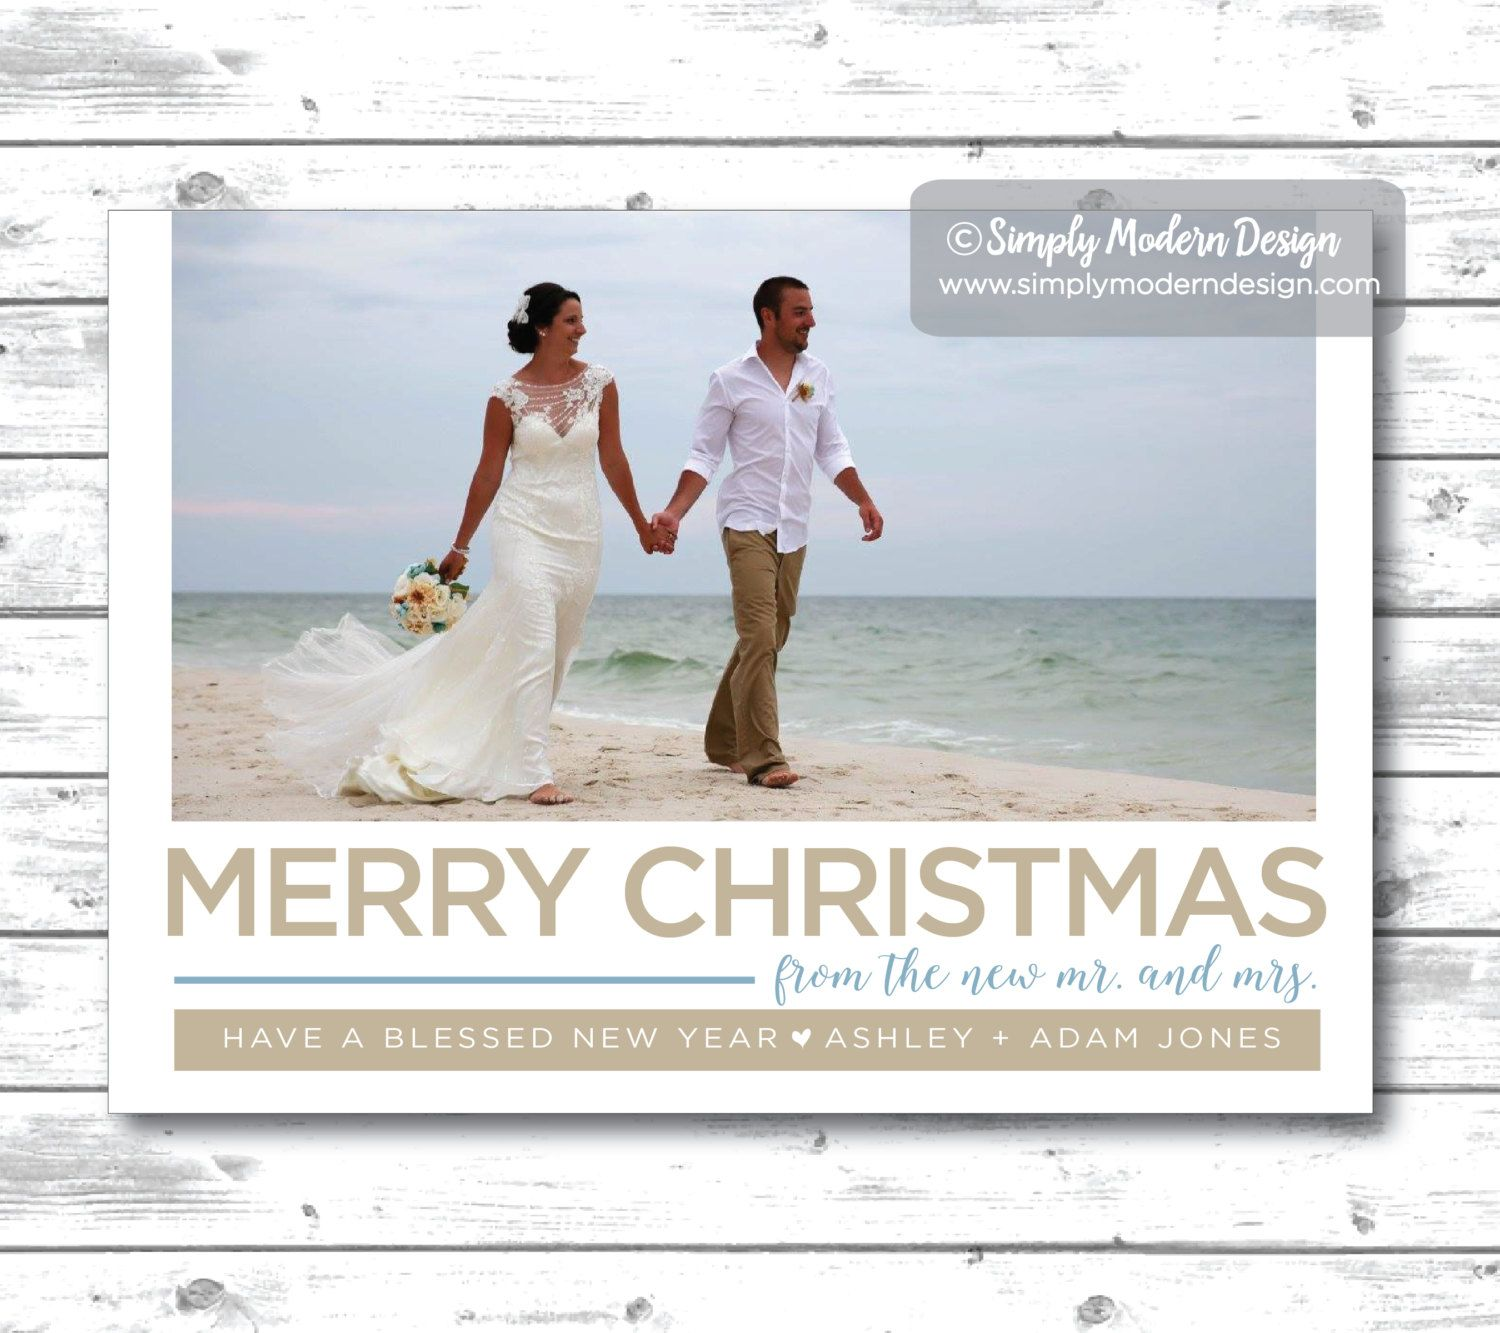 Holiday Christmas Card Merry Christmas From The New Mr And Mrs